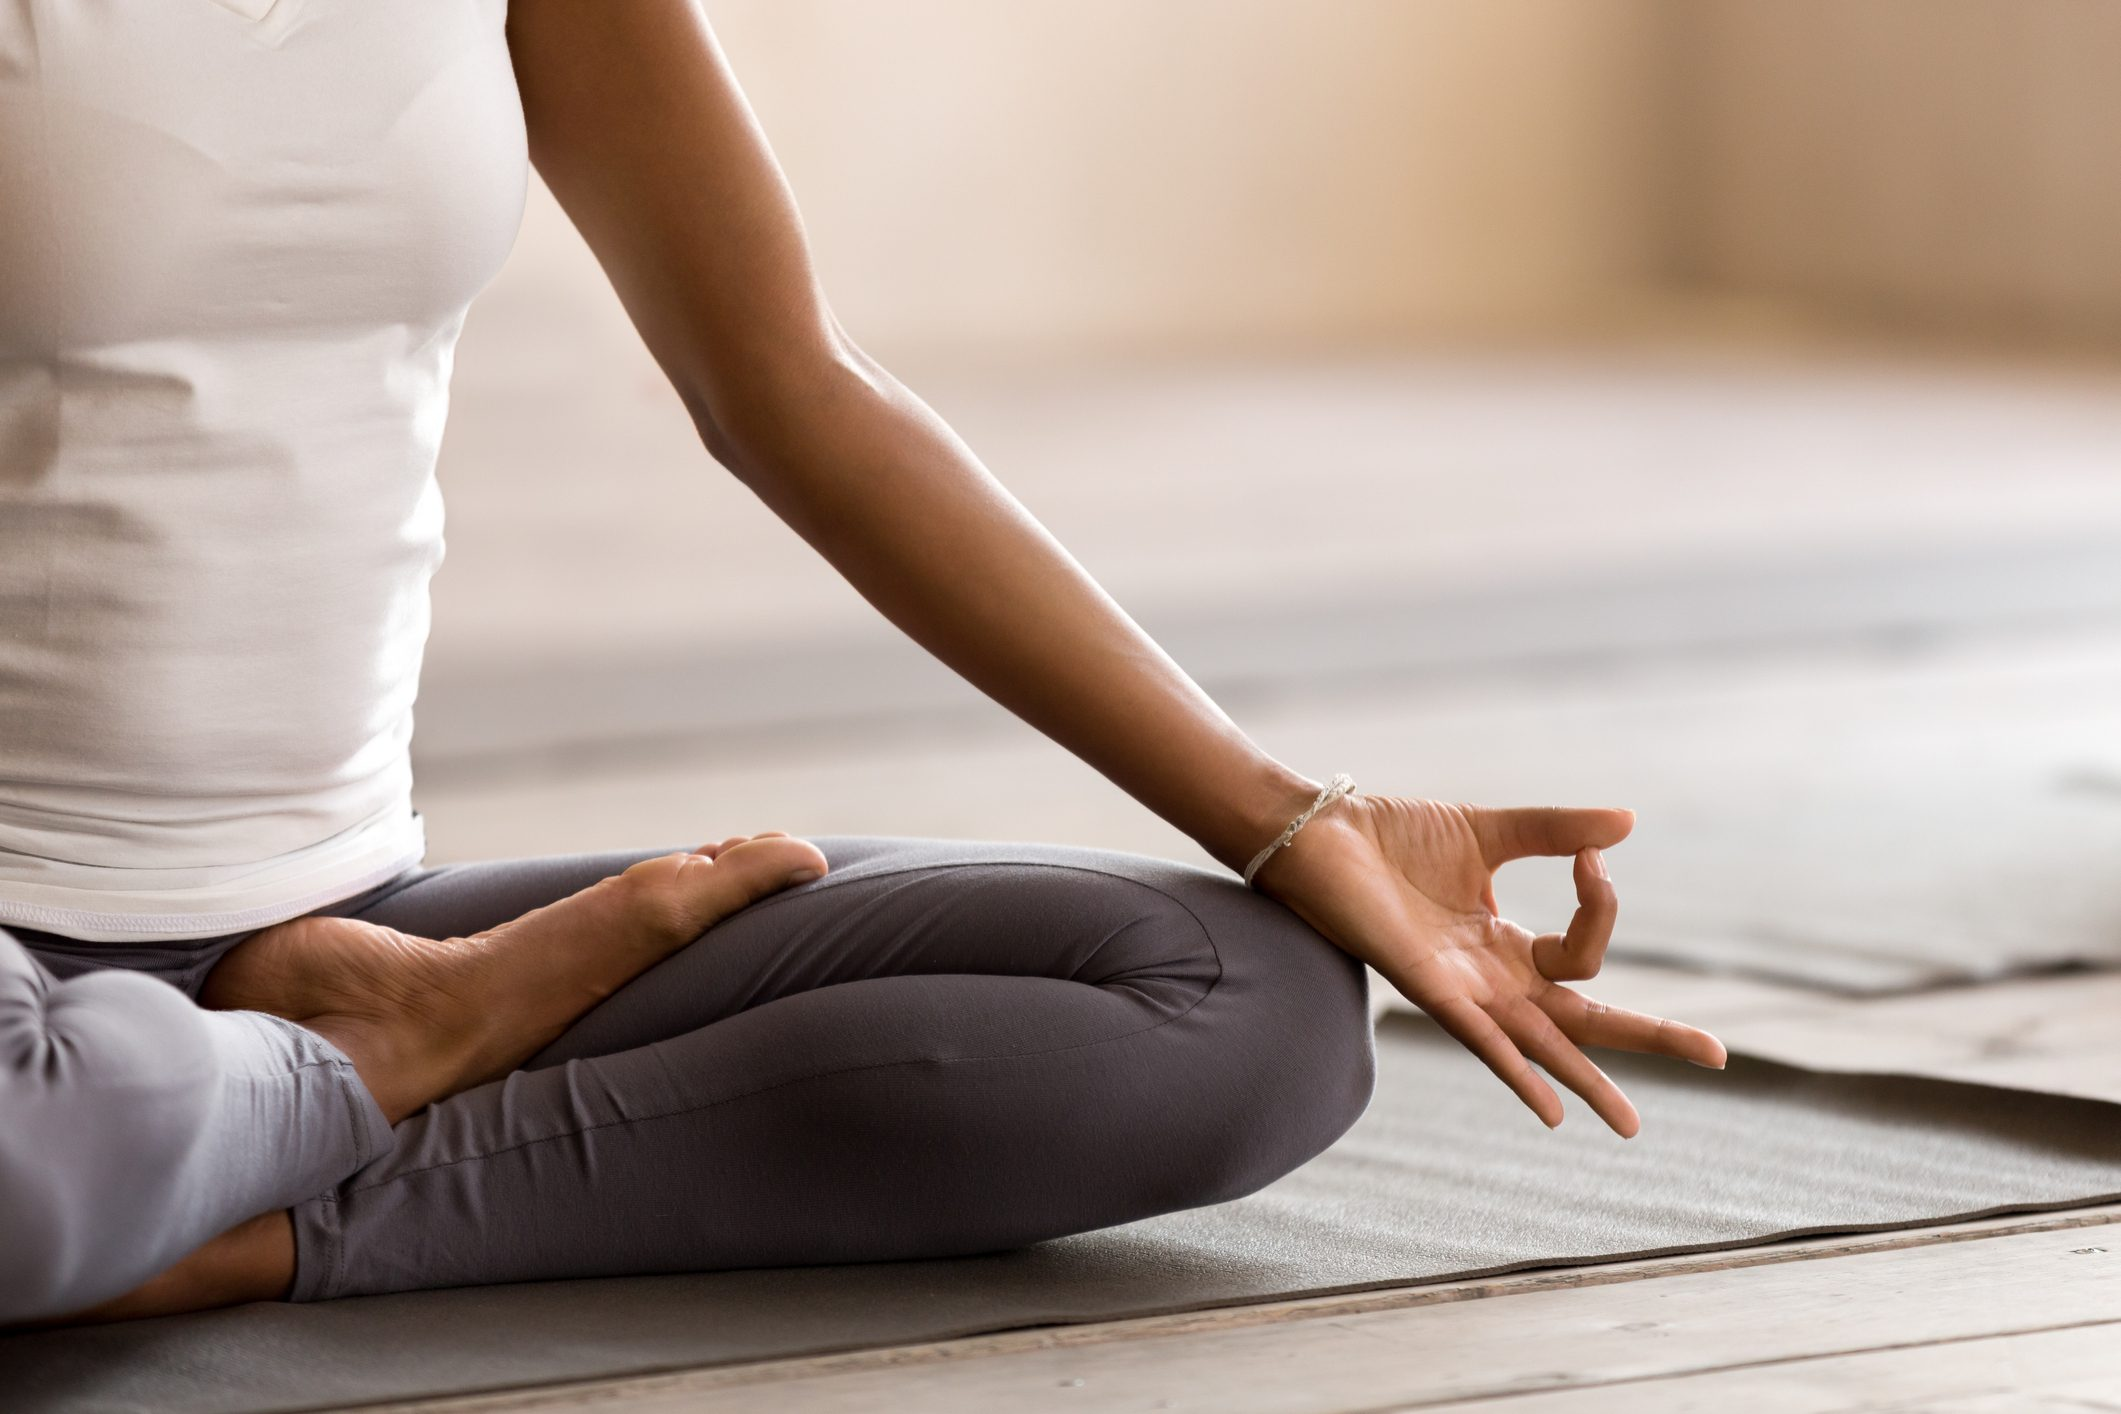 How Can You Use Yoga to Become More Flexible